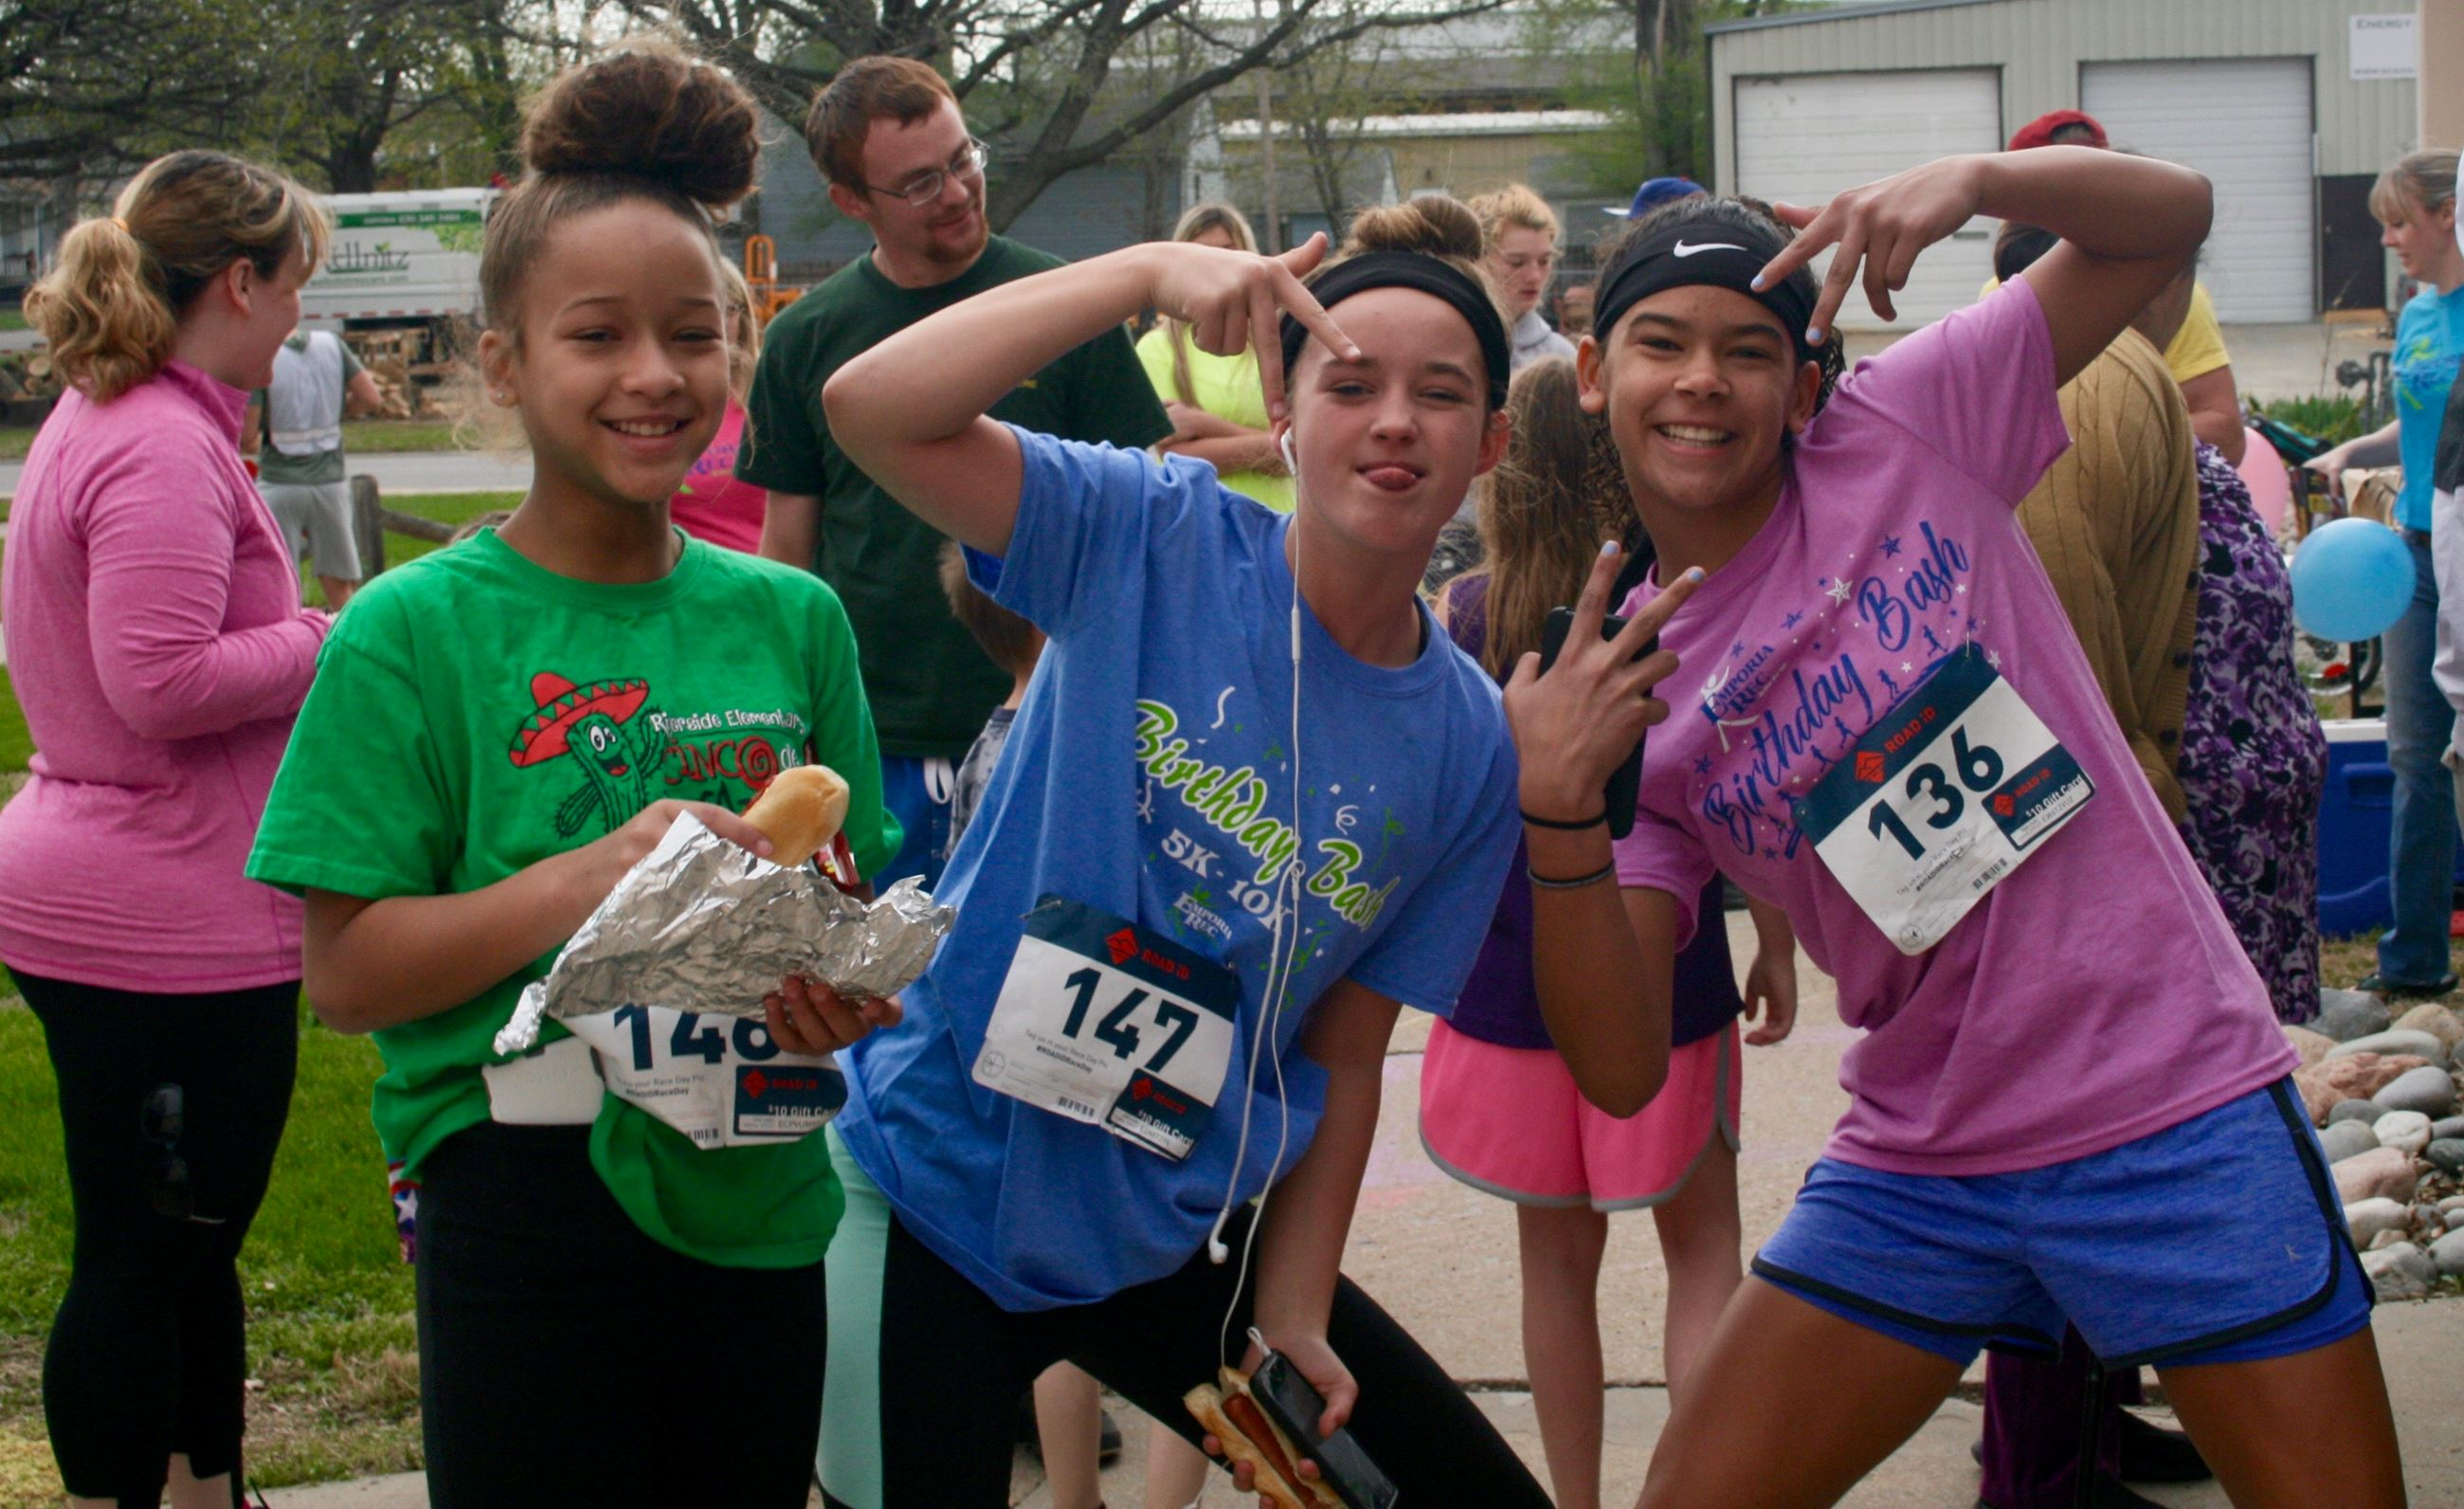 three girls at a 5K race